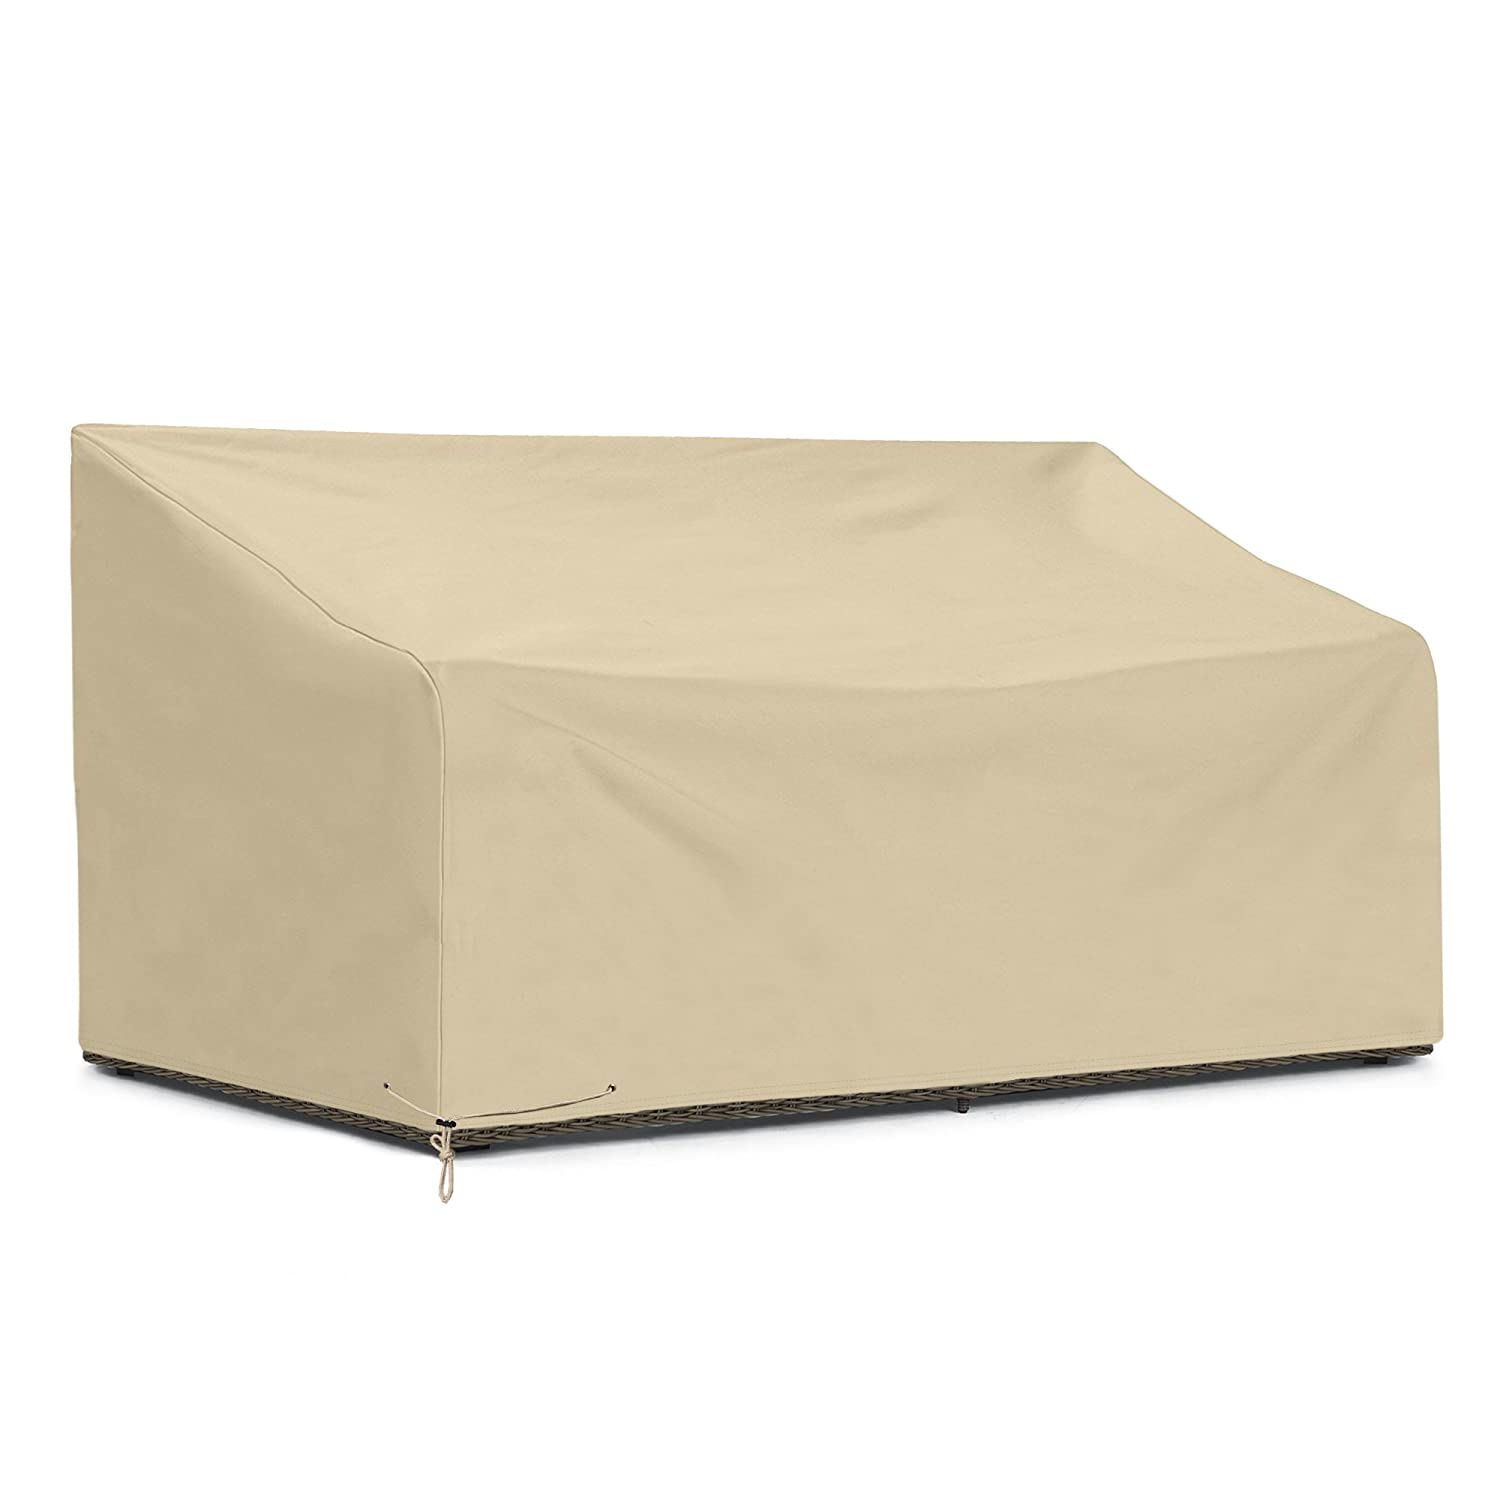 SunPatio Outdoor Sofa Cover, Patio Veranda Bench/Loveseat Furniture Cover 60 L x 33 W x 30/22 H, Durable and Water Resistant, All Weather Protection, Beige SD20012